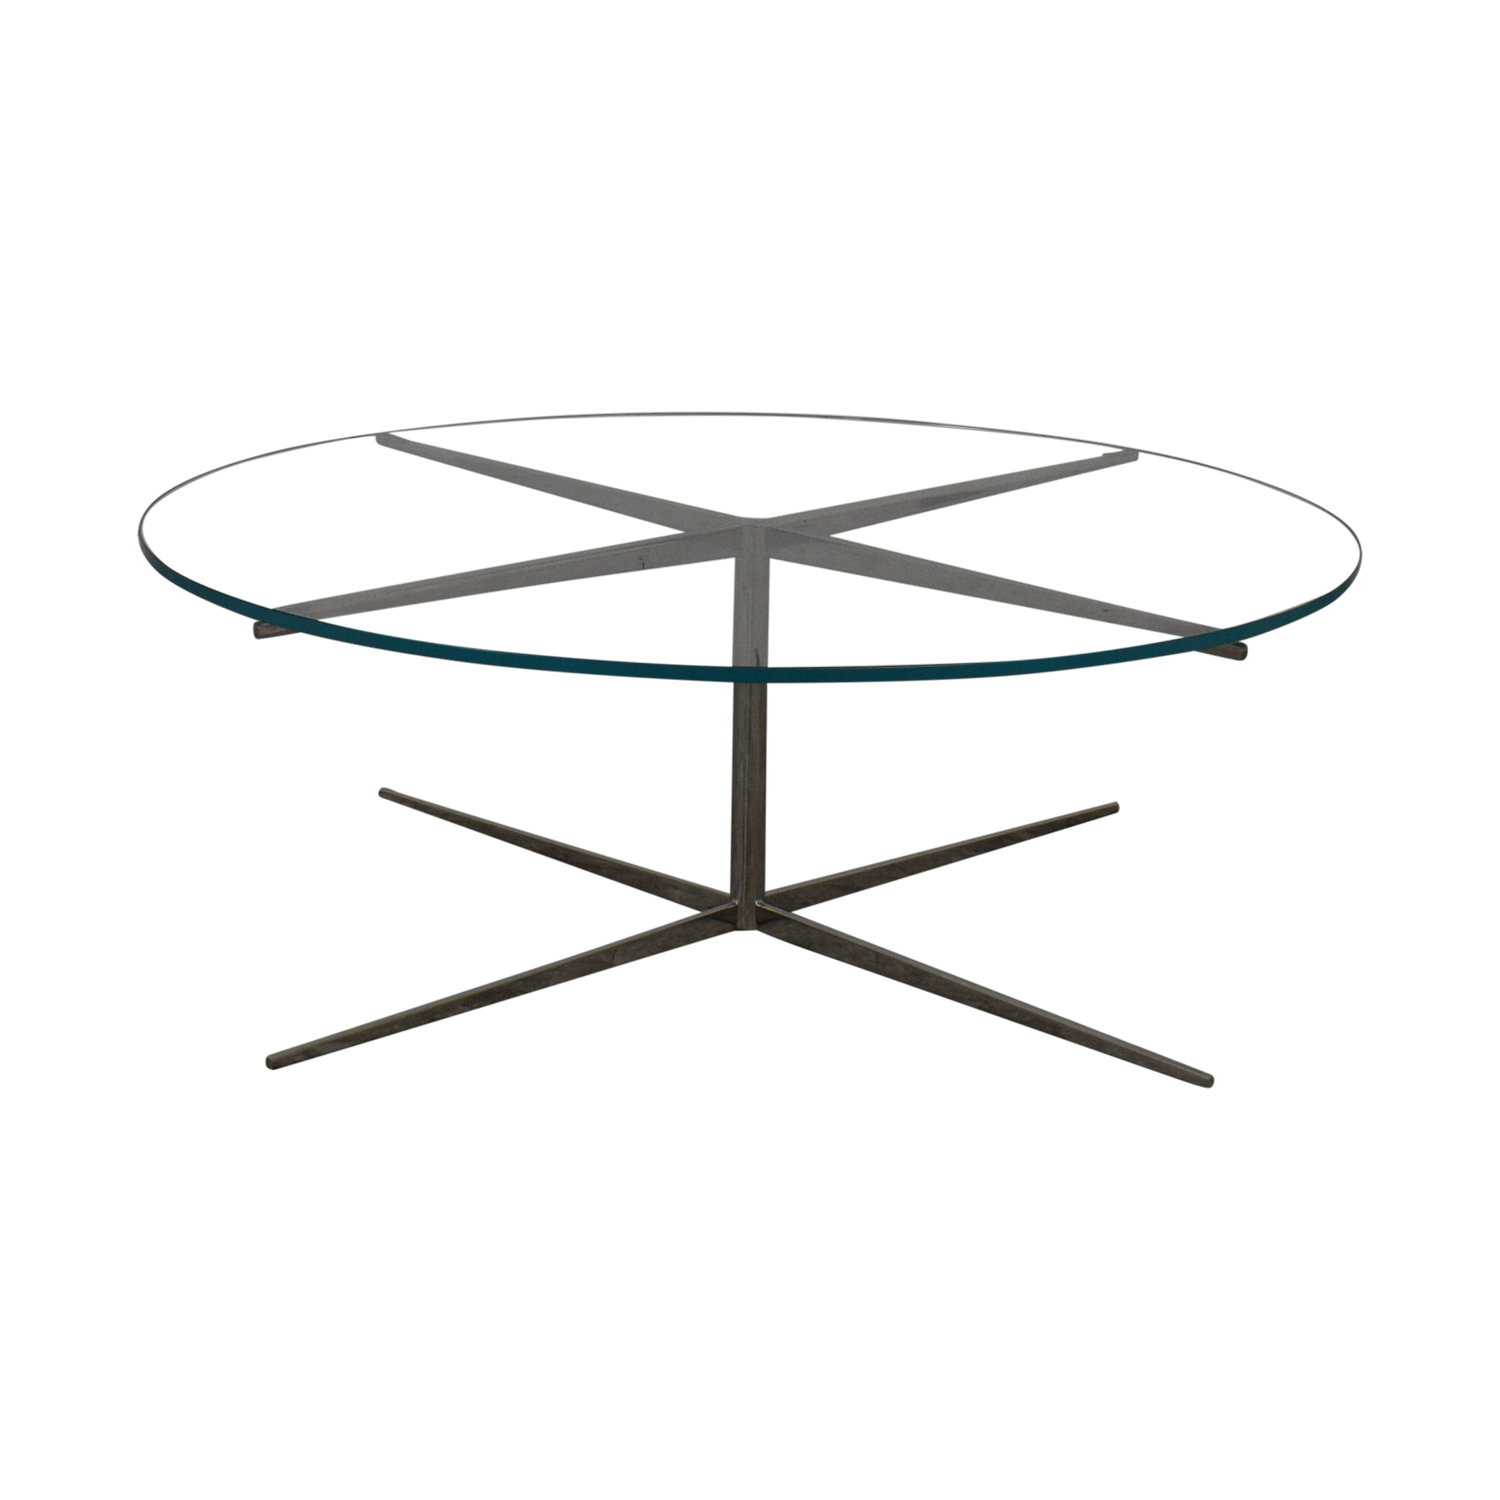 Bernhardt Bernhardt Round Coffee Table price